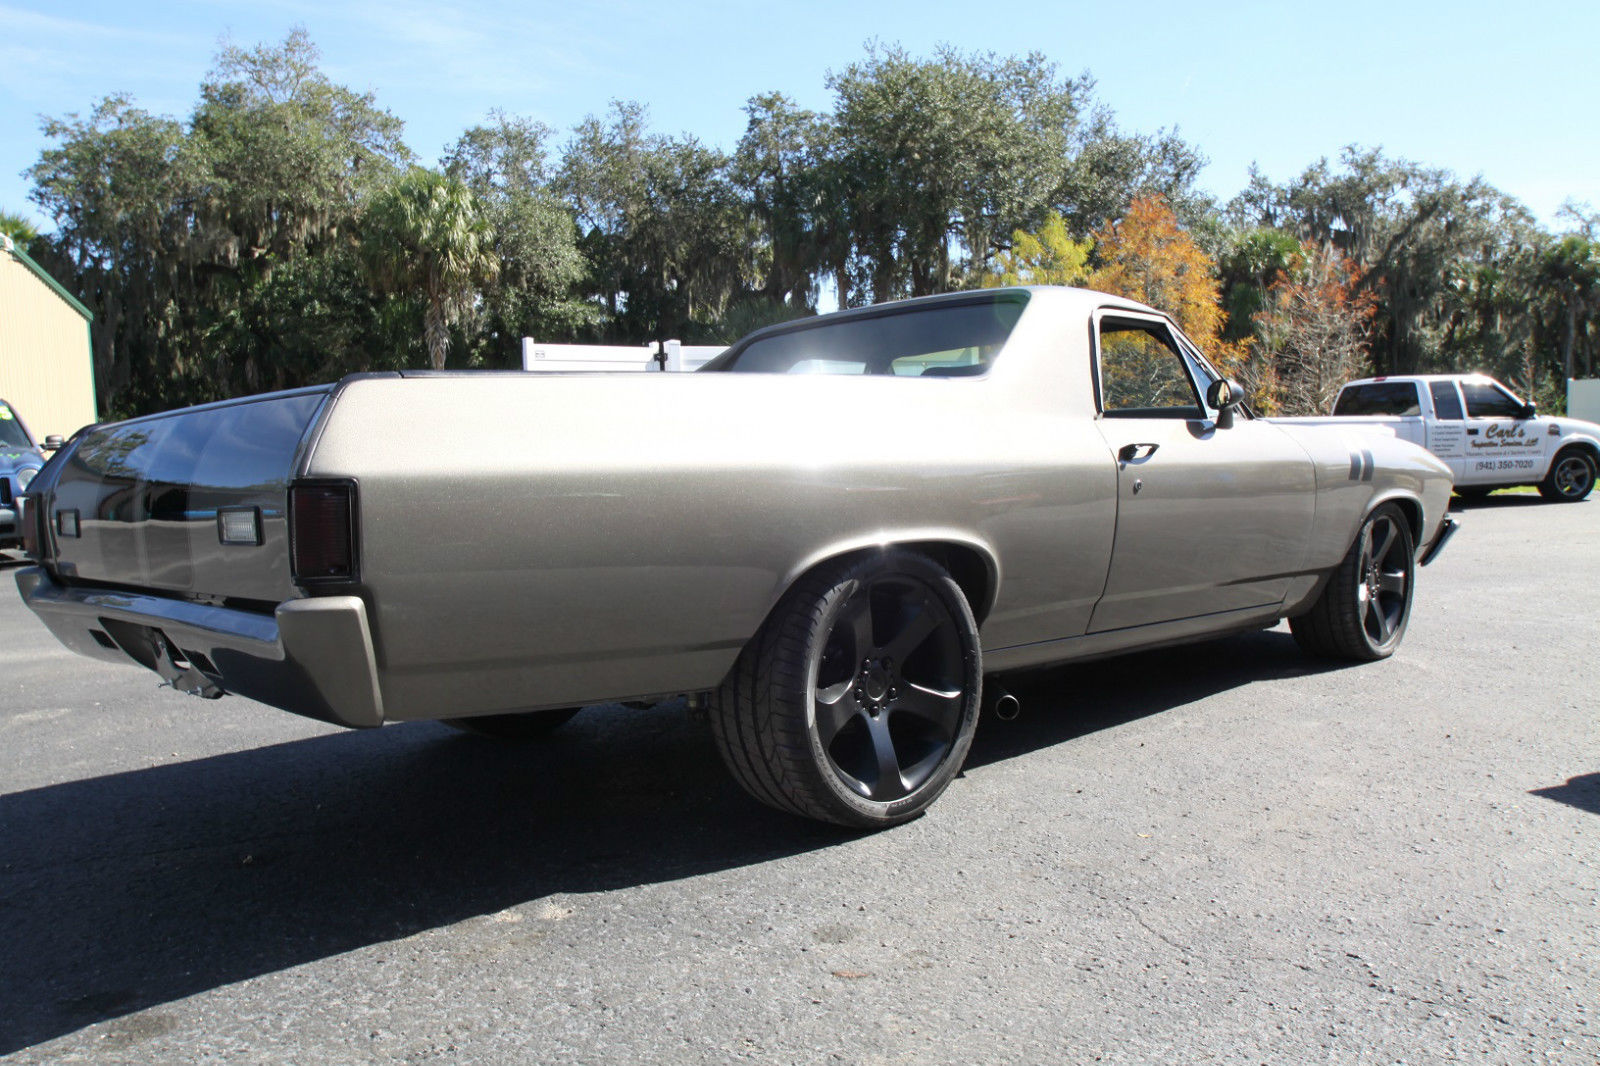 1969 Chevy El Camino Custom Build For Sale In Ellenton